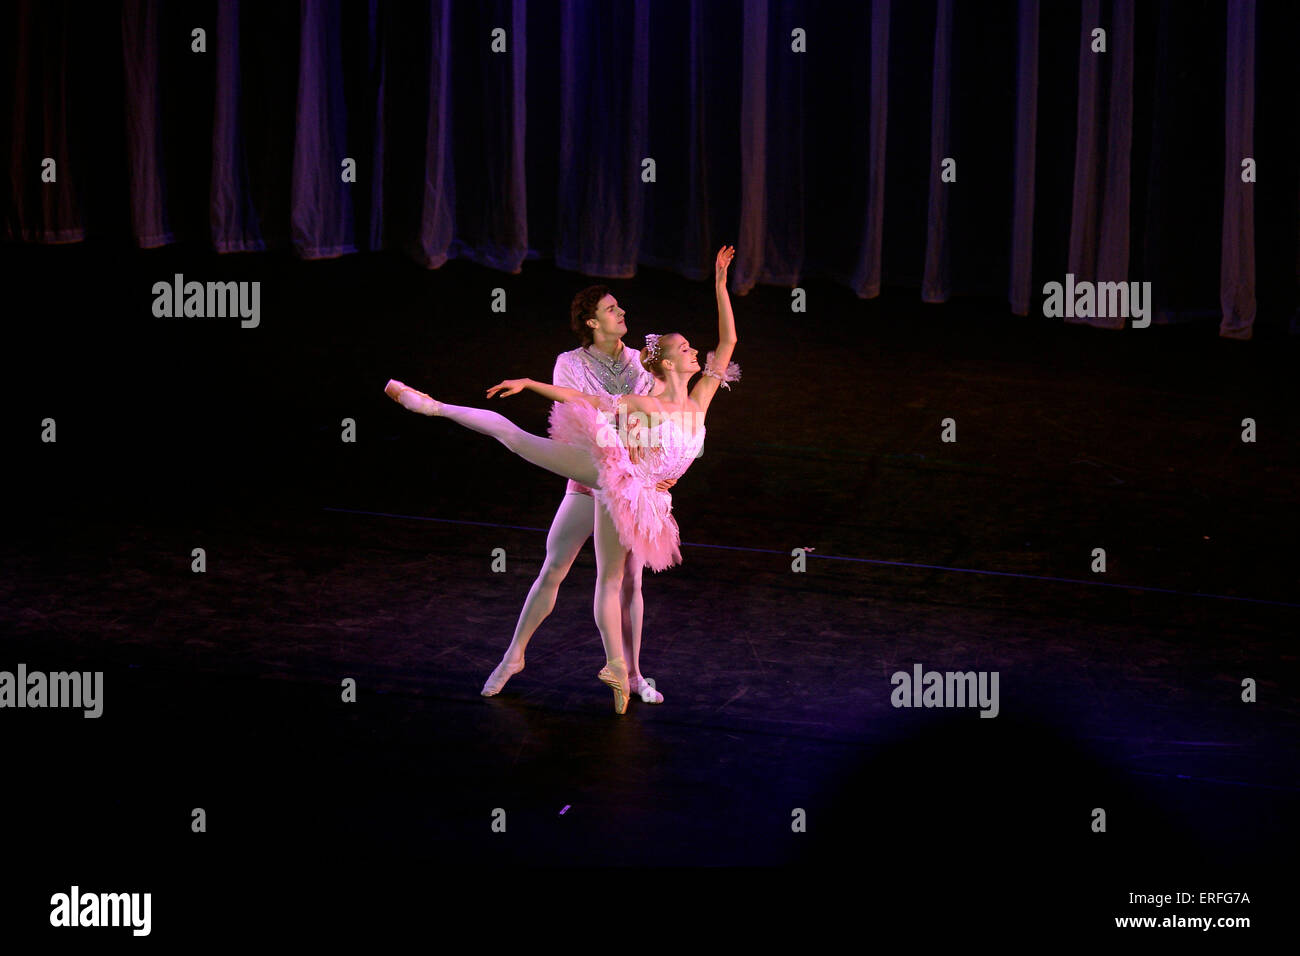 Ballet dancers against curtain backdrop from Birmingham Royal Ballet - Wales Millennium Centre opening night - Stock Image